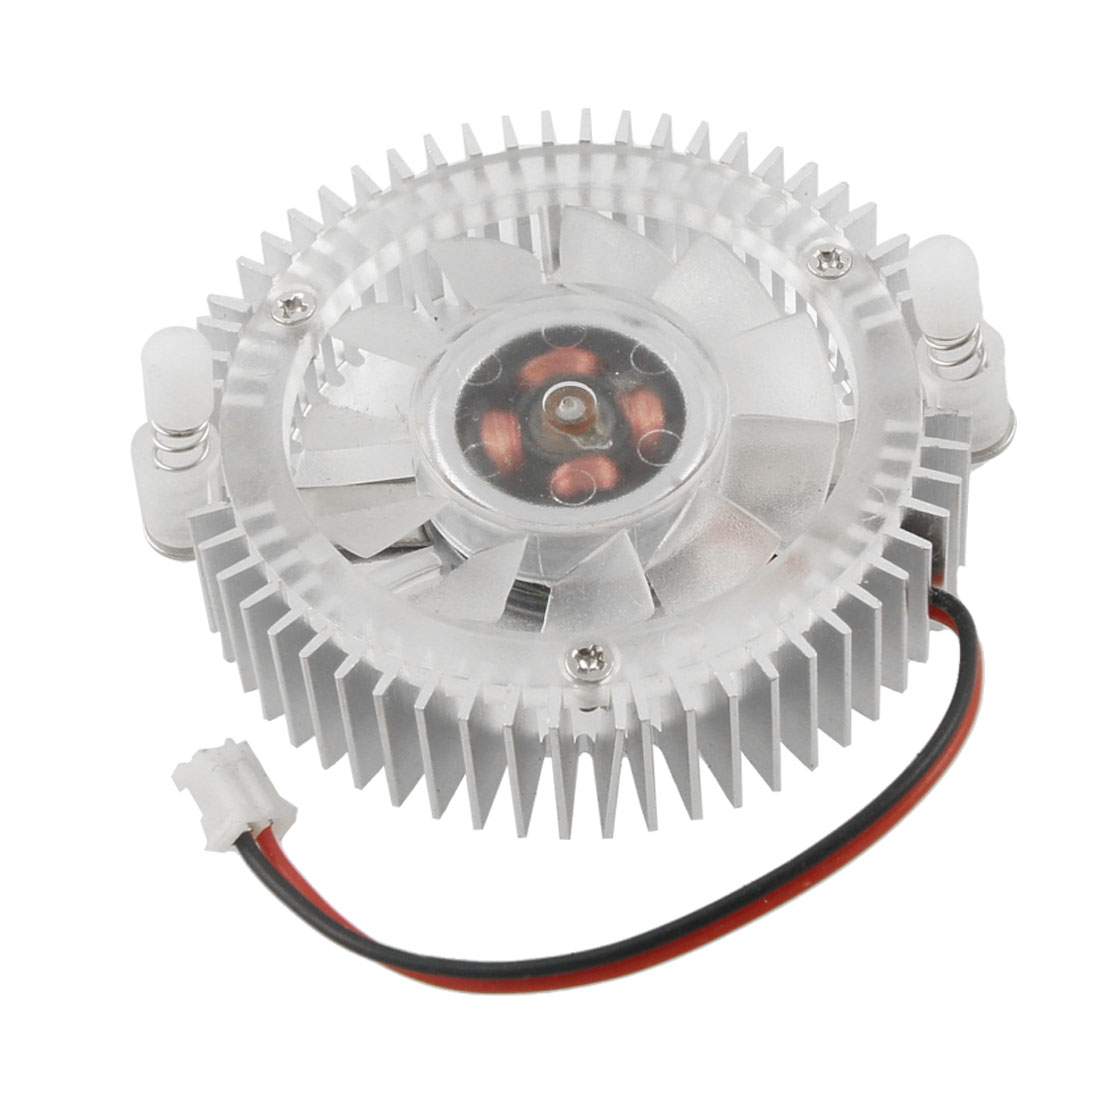 Silver Tone DC 12V 0.1A Video Card CPU Cooler Cooling Fan